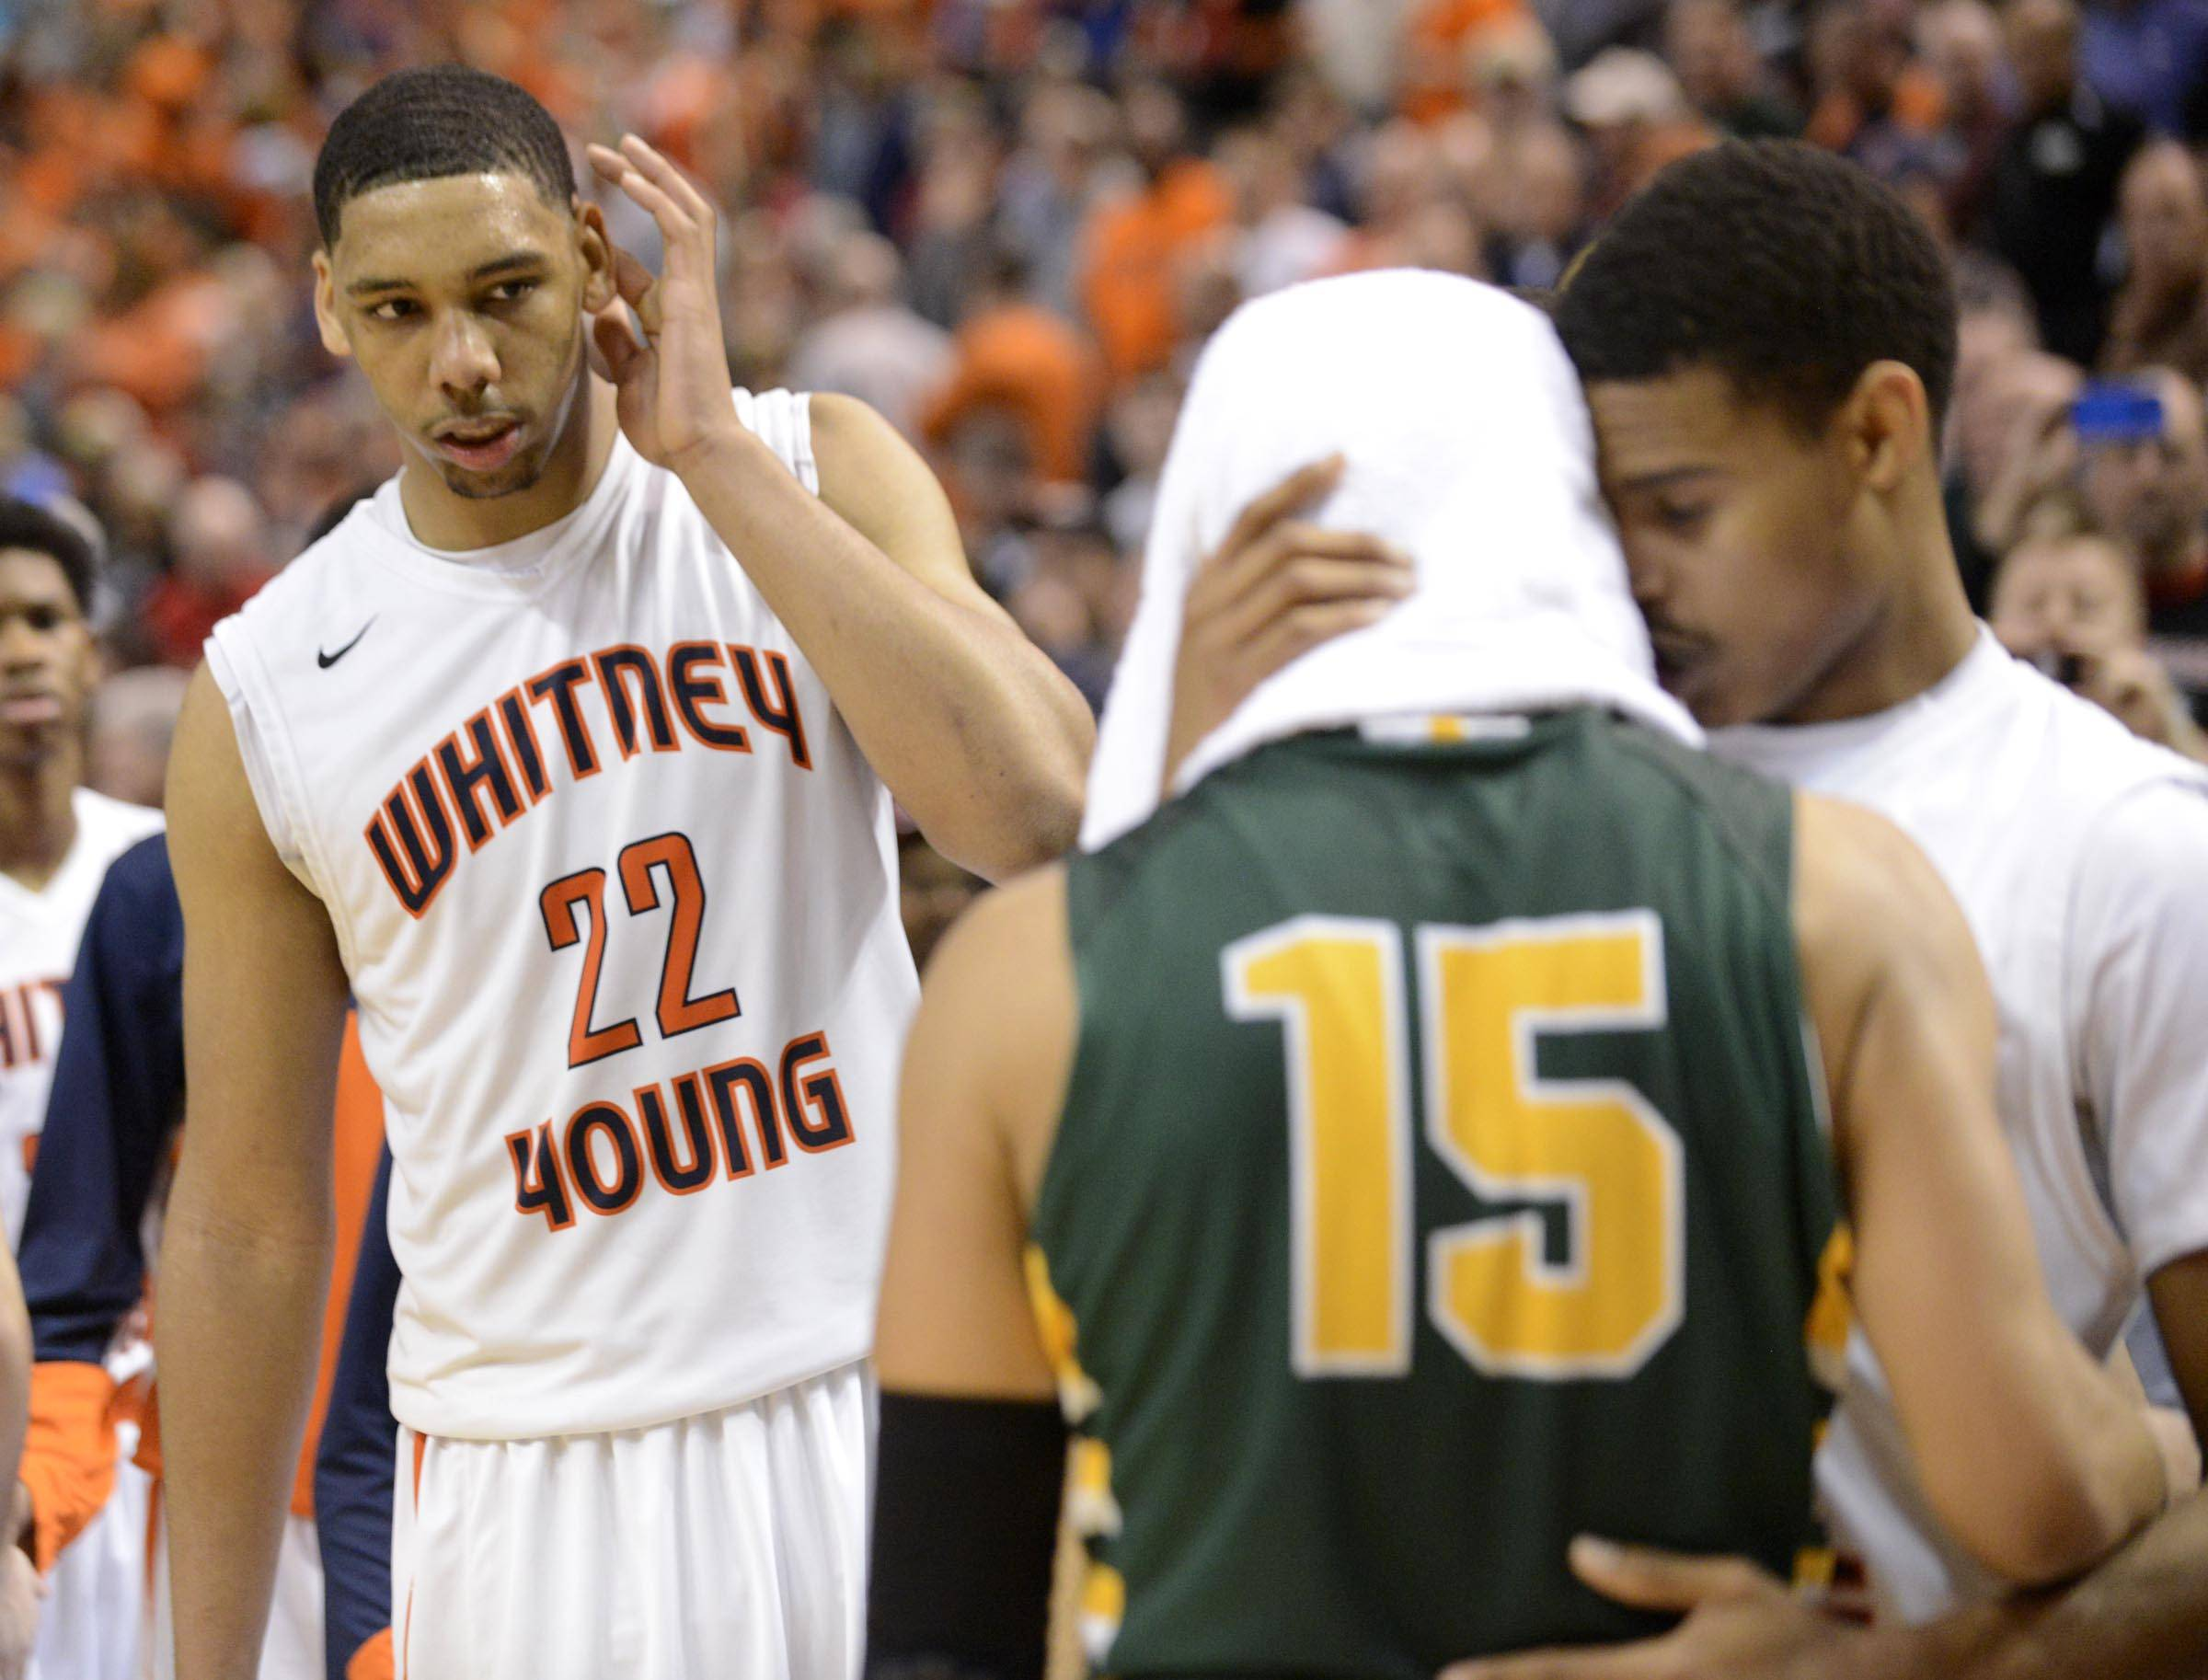 Whitney Young's Jahlil Okafor looks on as teammate Miles Reynolds speaks with Stevenson's Jalen Brunson.